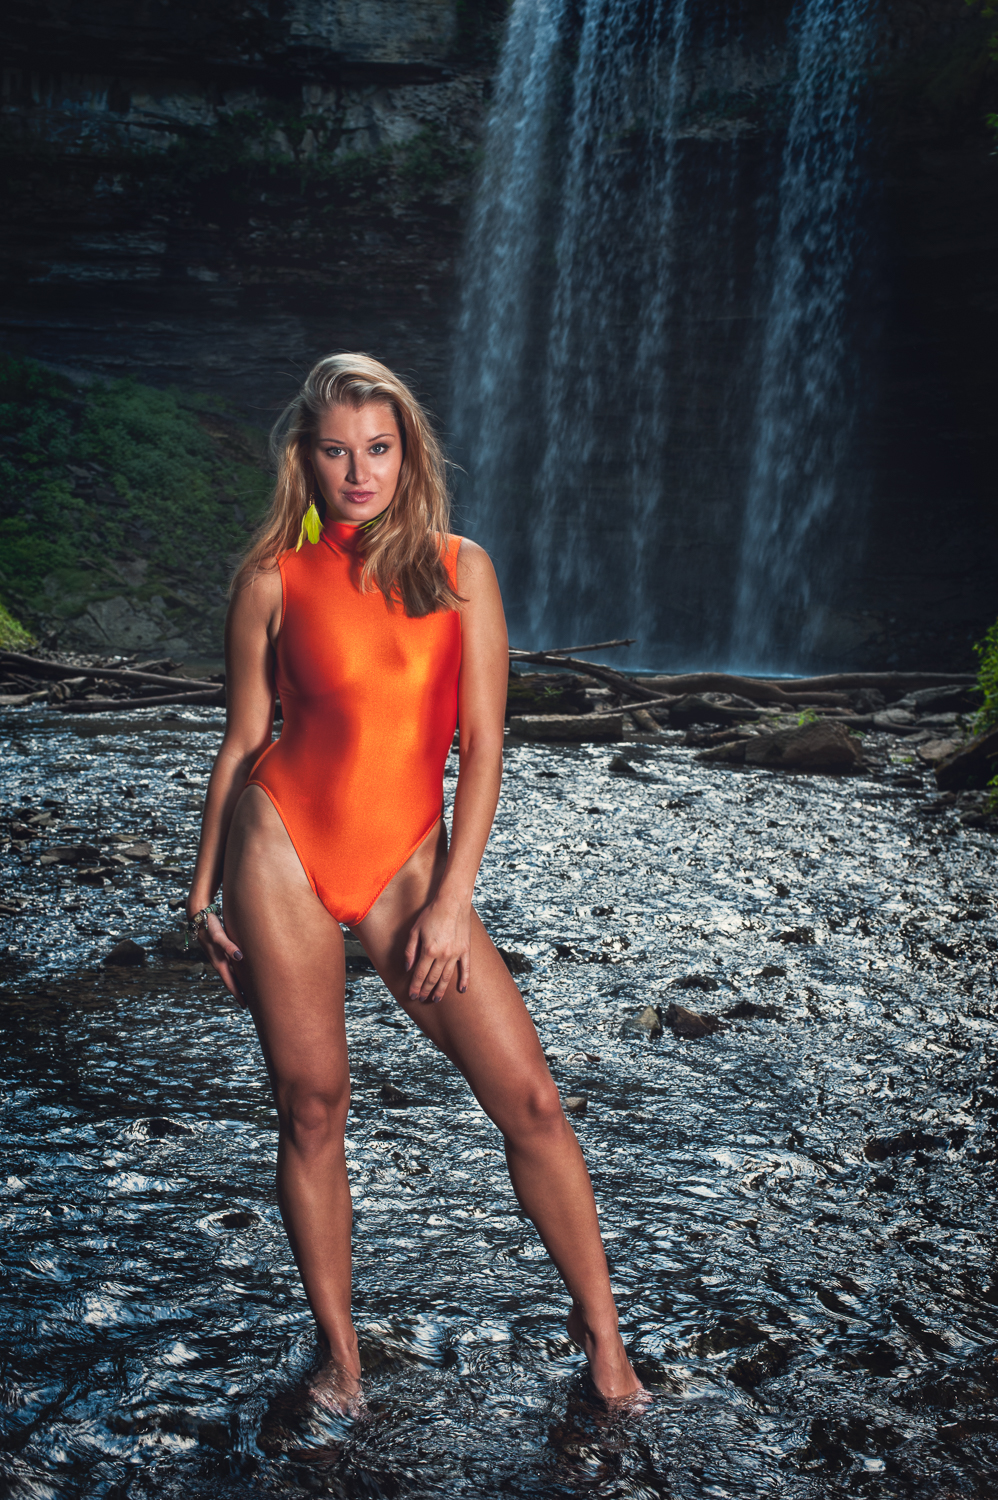 Hamilton Toronto Fashion Sports Swimwear Photographer -  by Marek Michalek.jpg